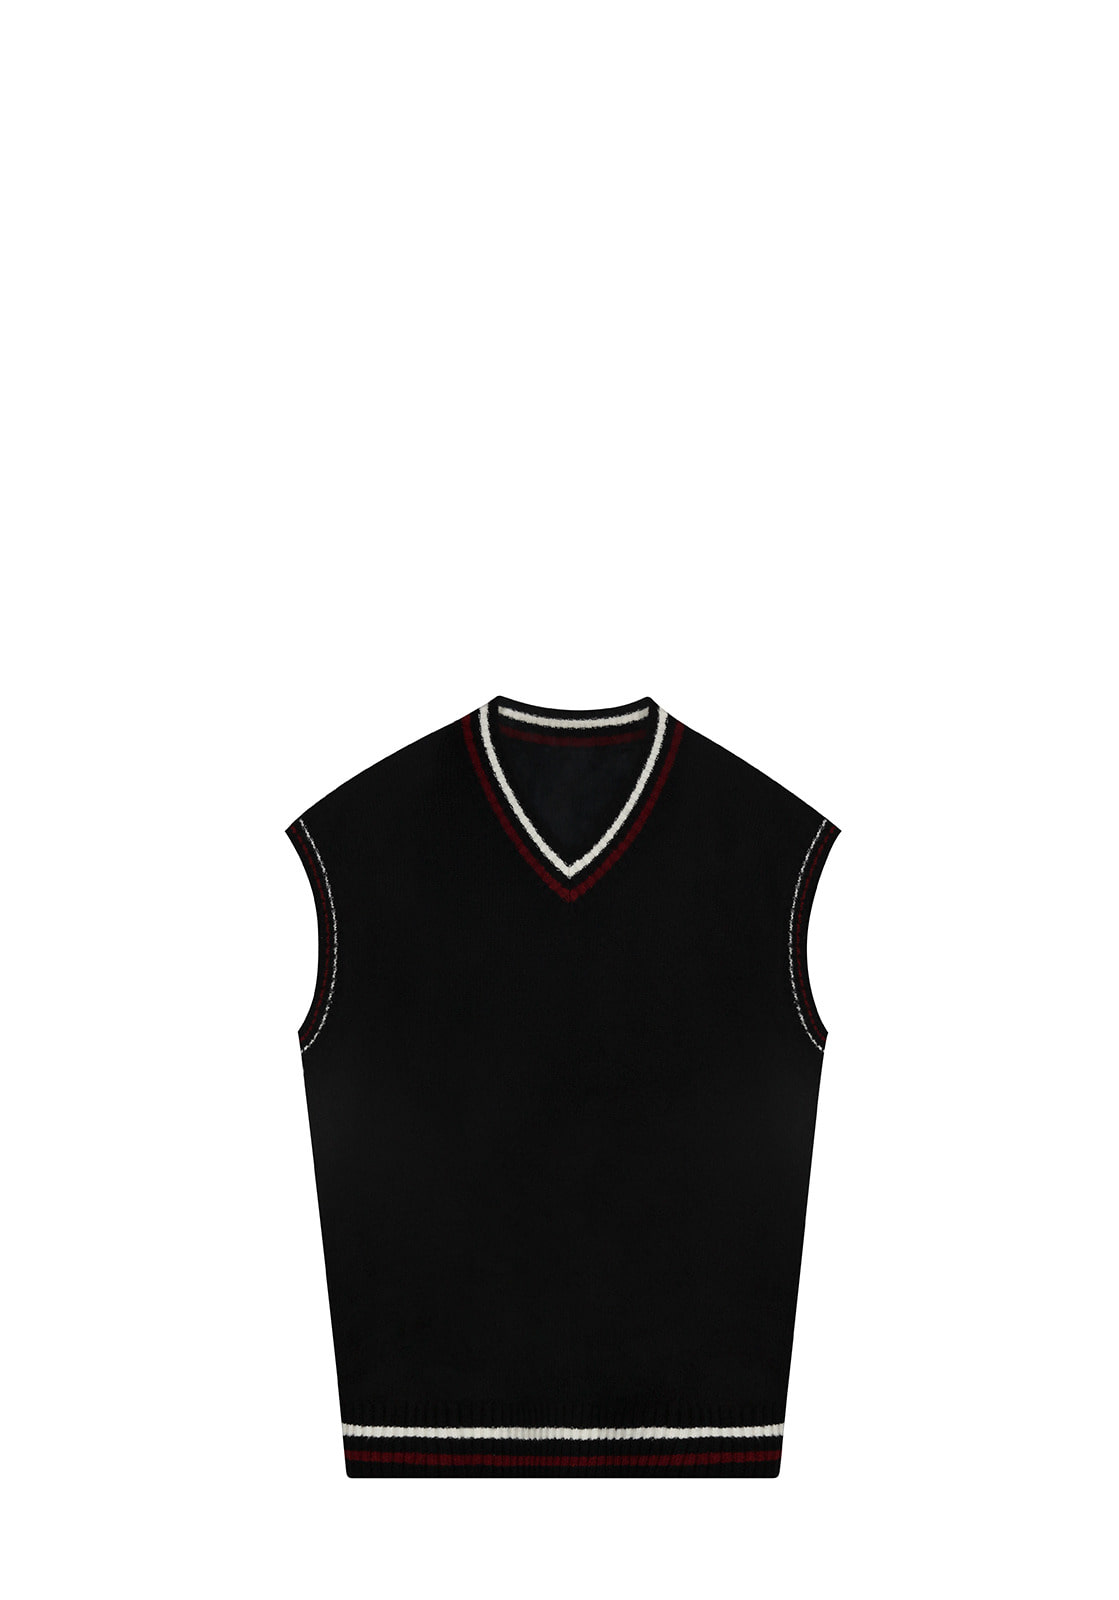 V511 TWO TONE VEST KNITBLACK